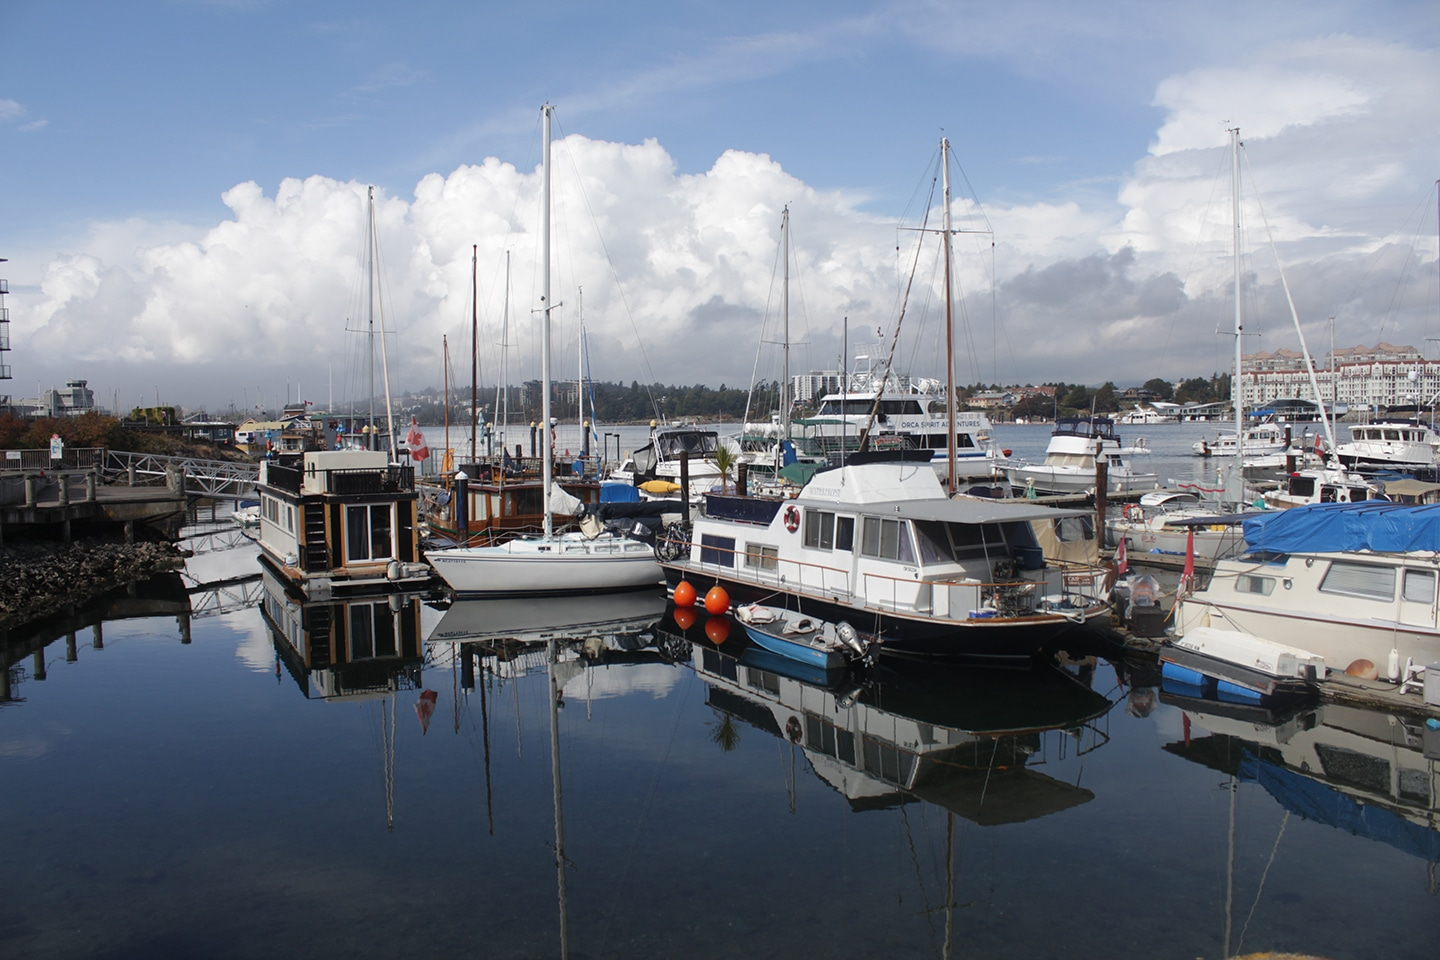 Factors to consider when choosing a boat insurance policy